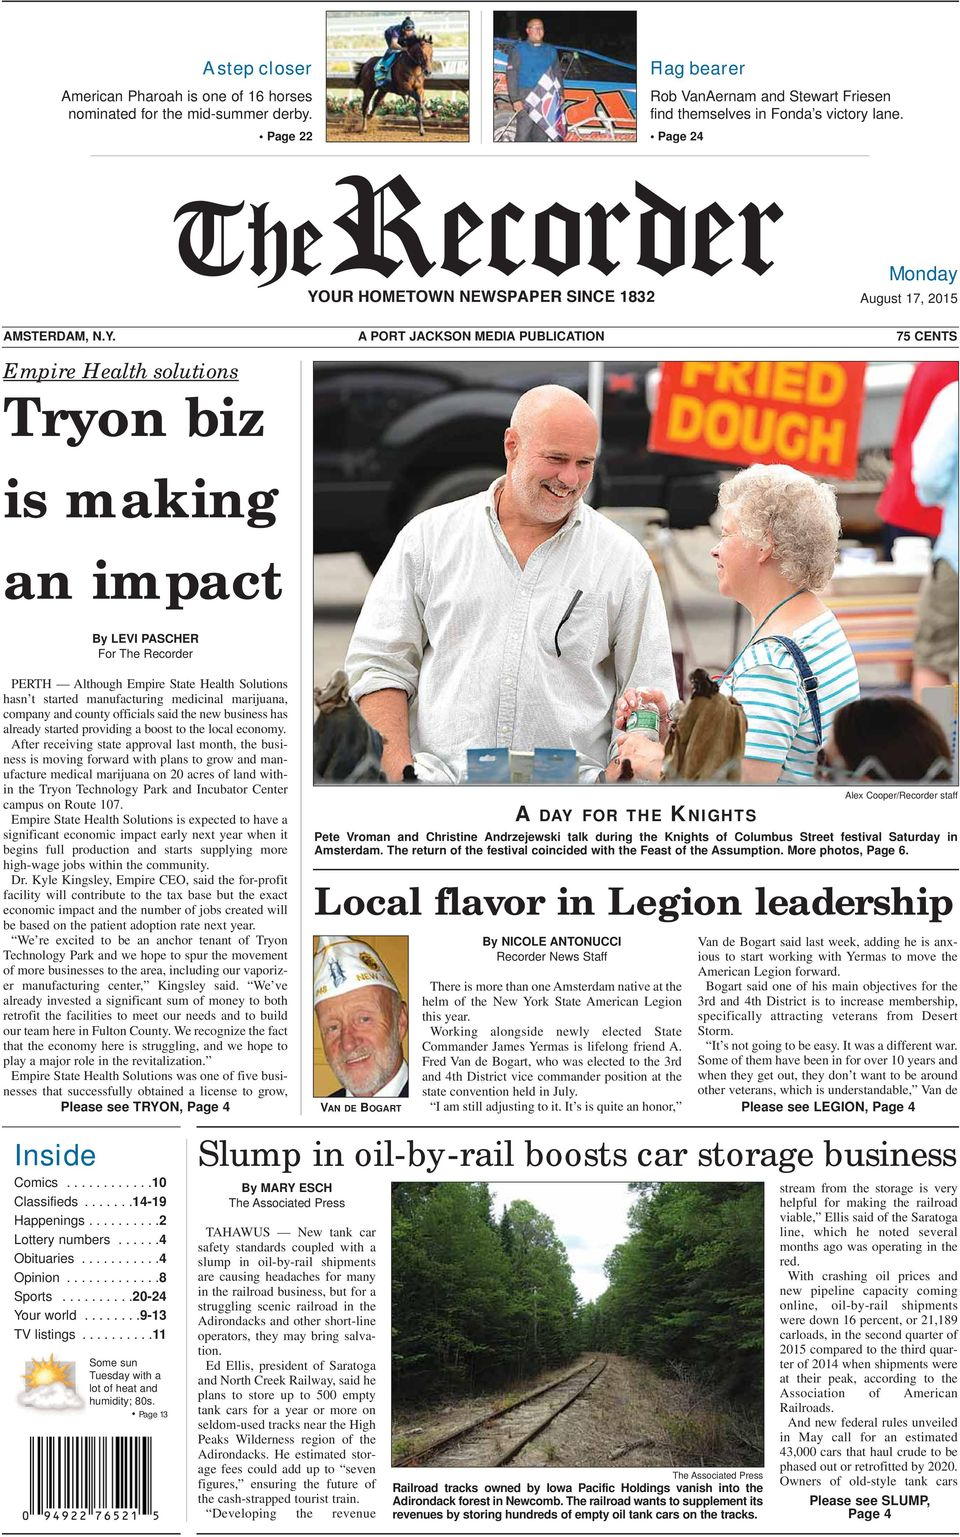 A PORT JACKSON MEDIA PUBLICATION 75 CENTS Empire Health solutions Tryon biz is making an impact By LEVI PASCHER For The Recorder PERTH Although Empire State Health Solutions hasn t started